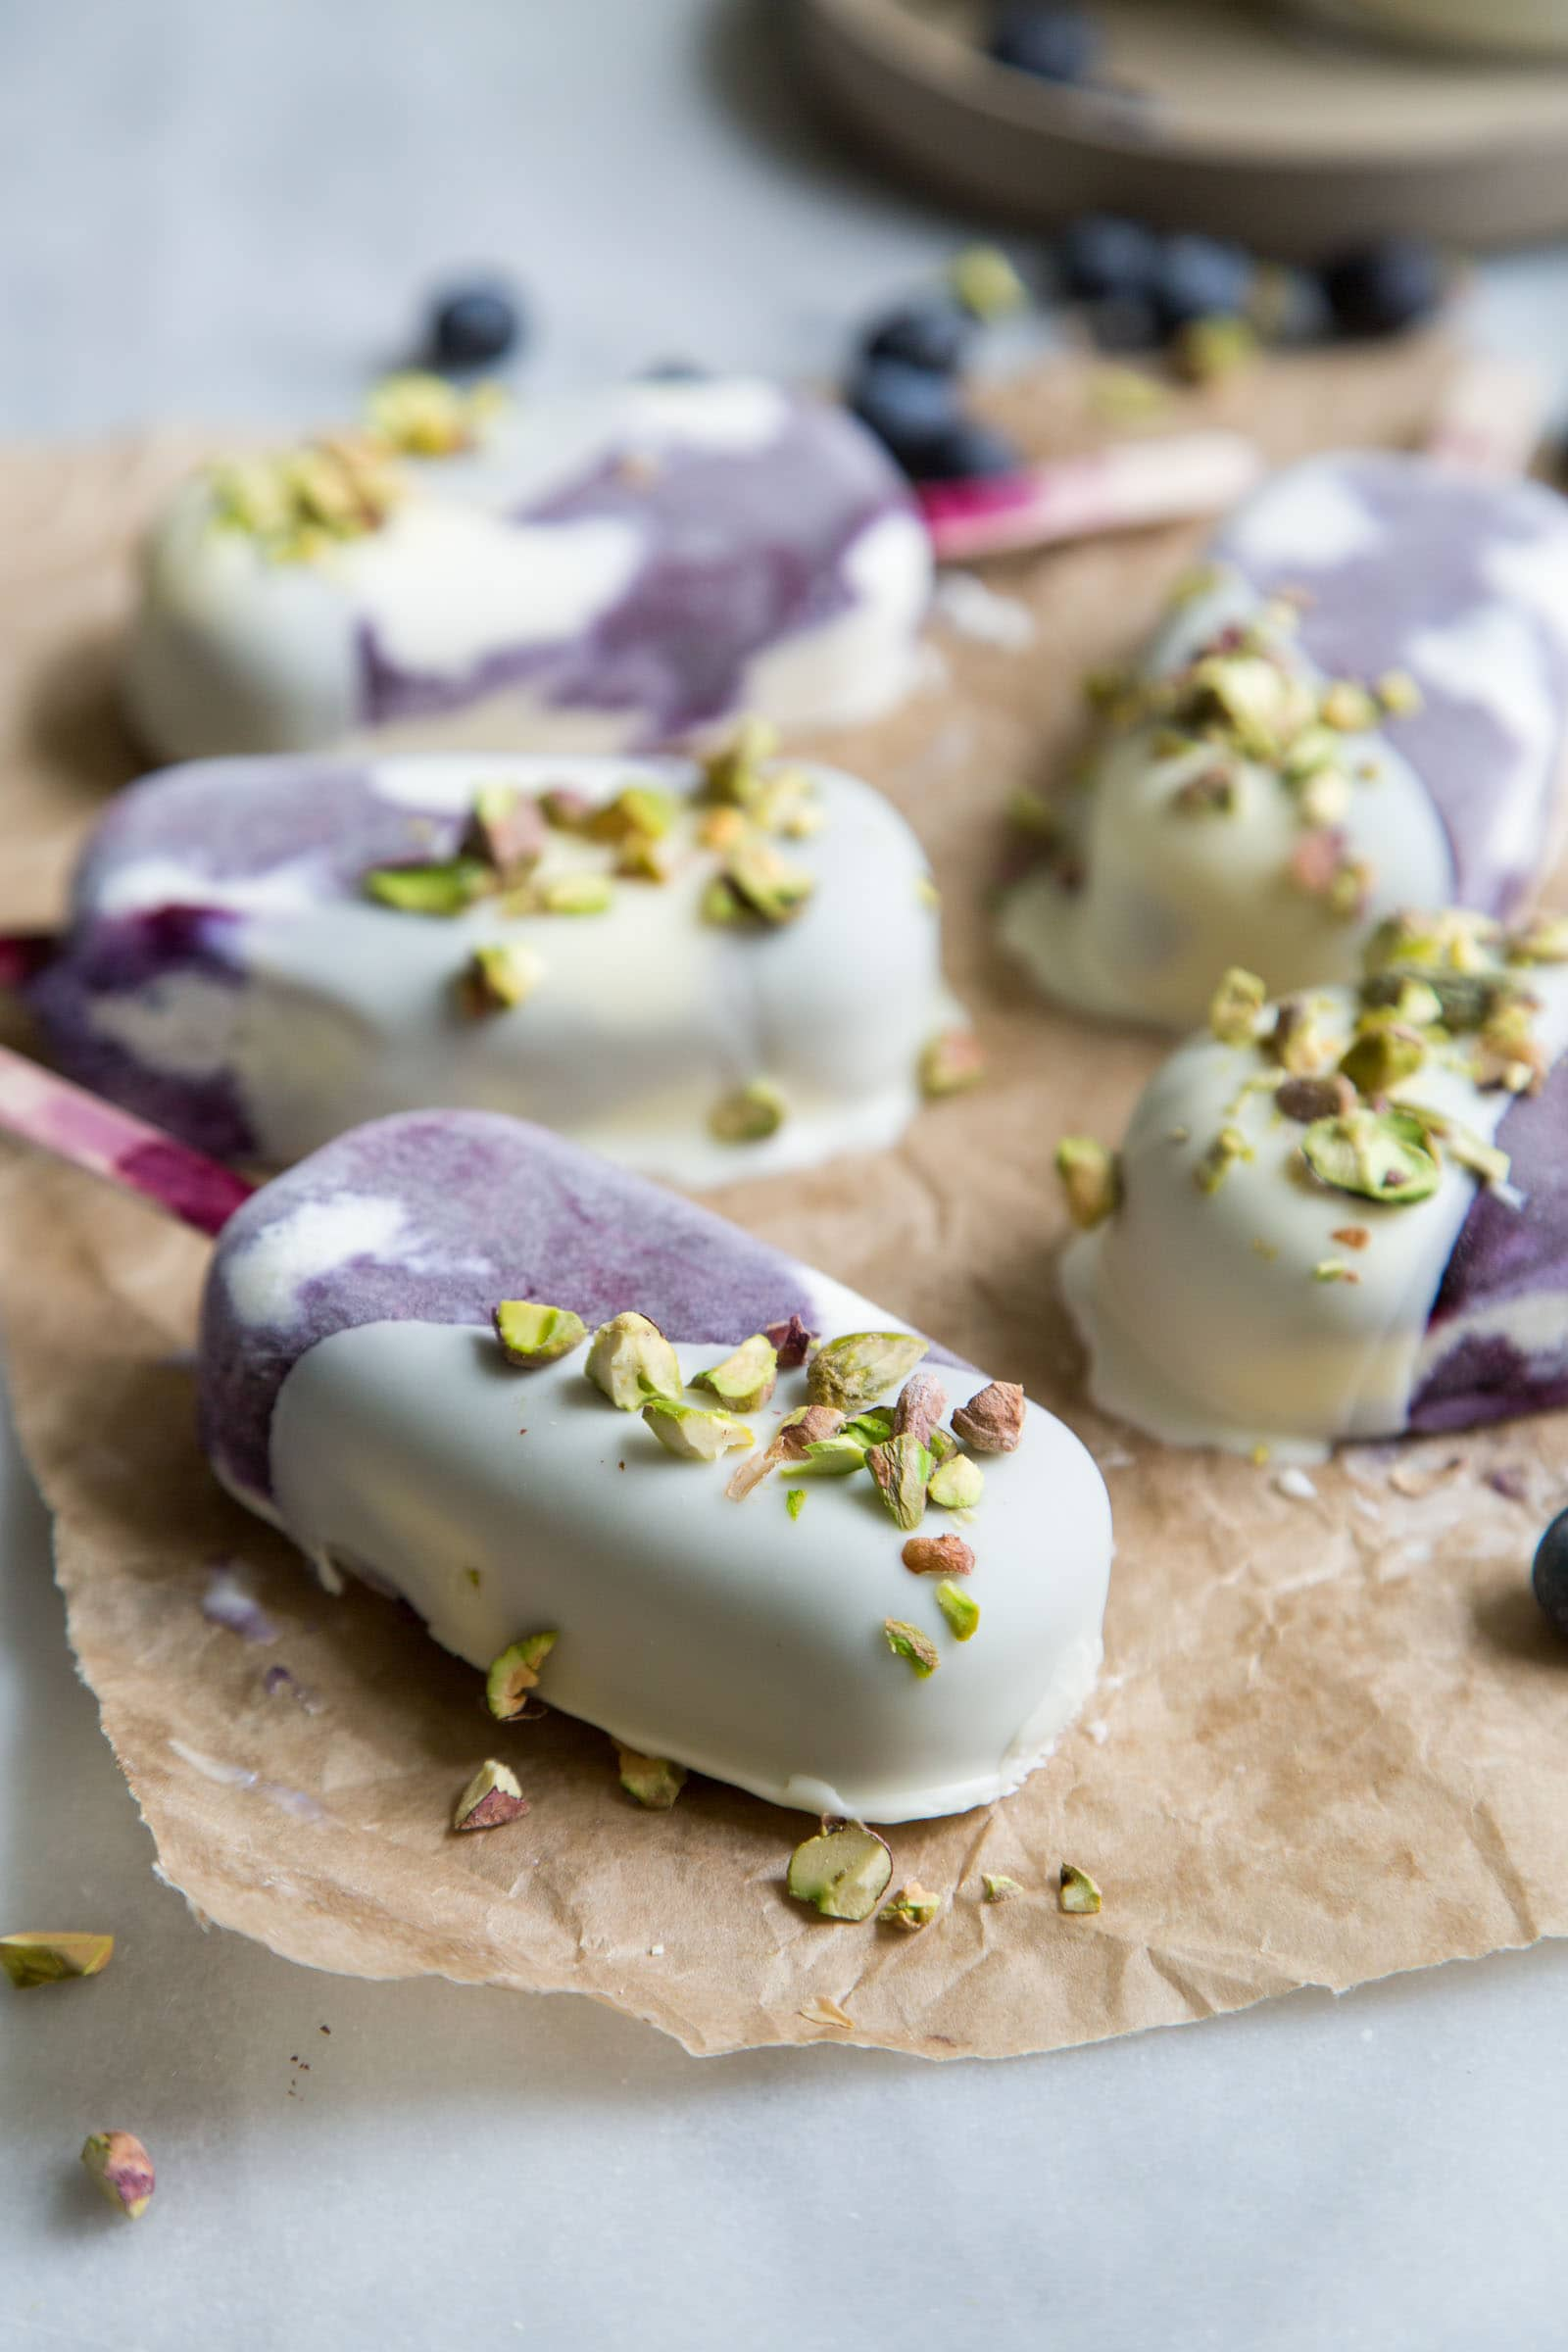 White Chocolate Blueberry Ice Cream Bars